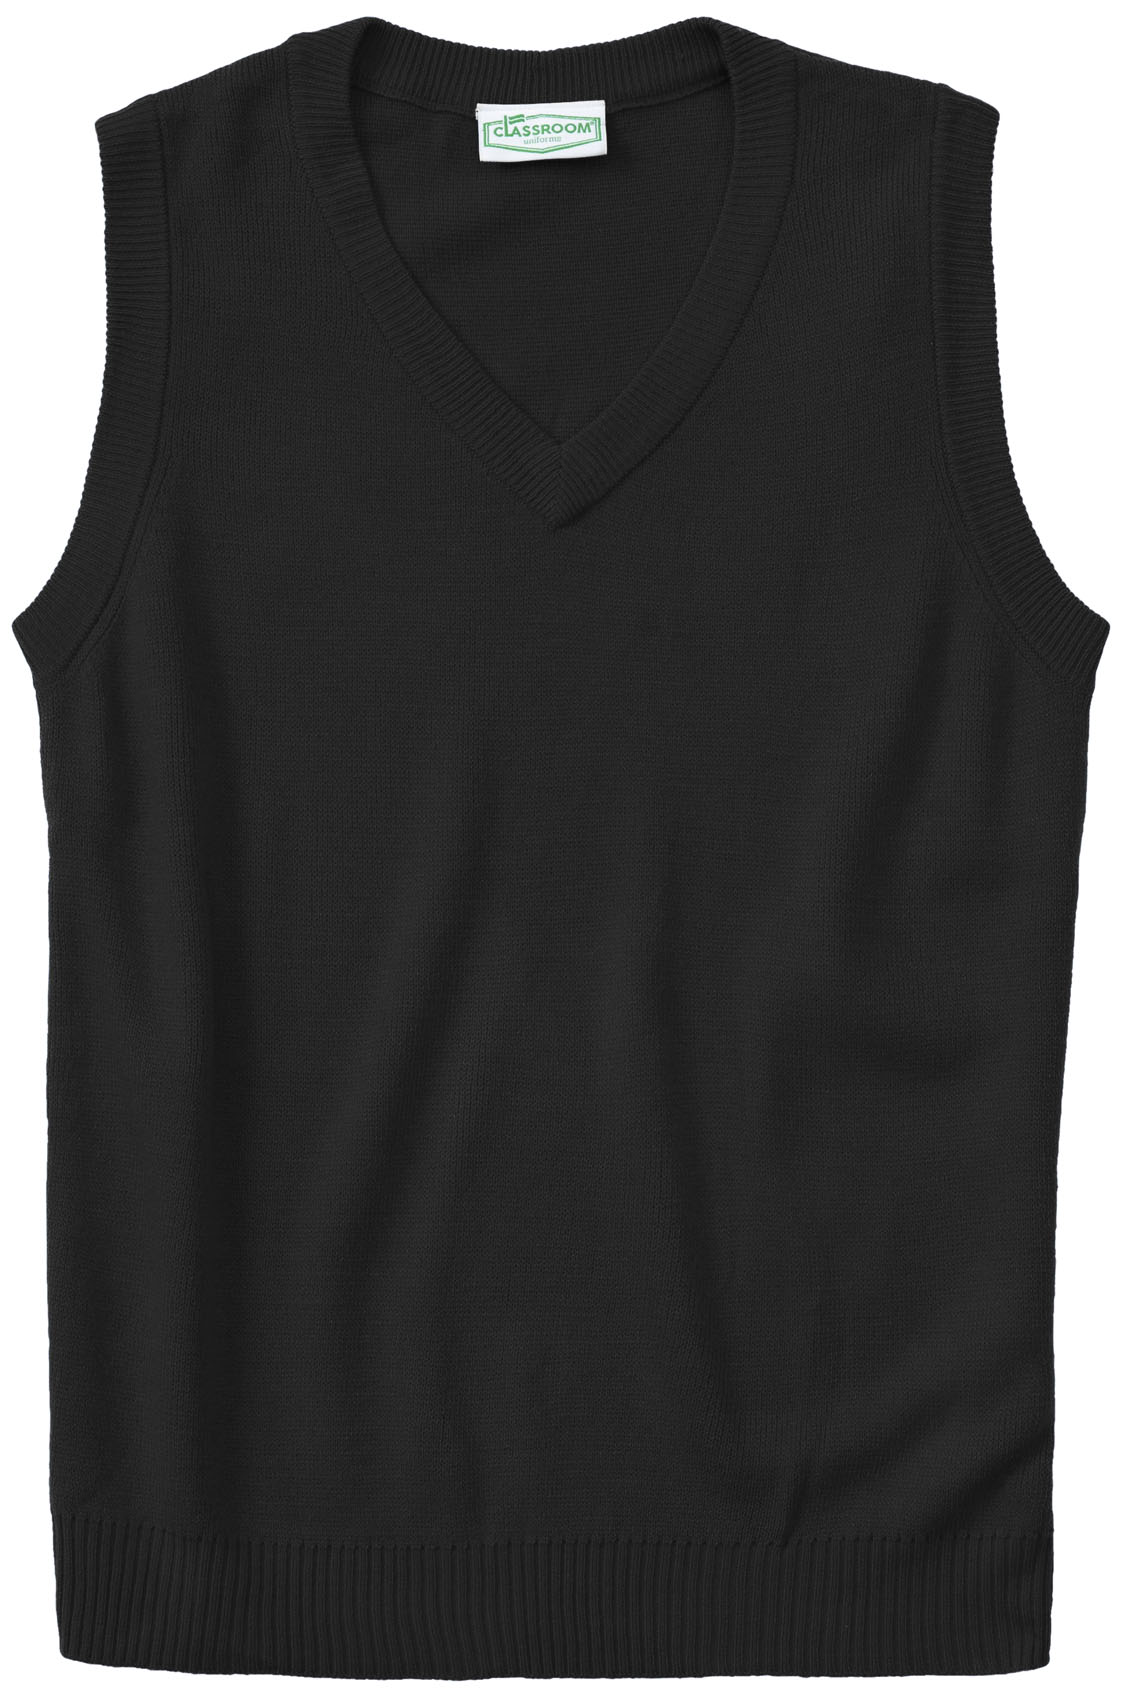 Classroom Youth Unisex V- Neck Sweater Vest 56912-BLK from ...